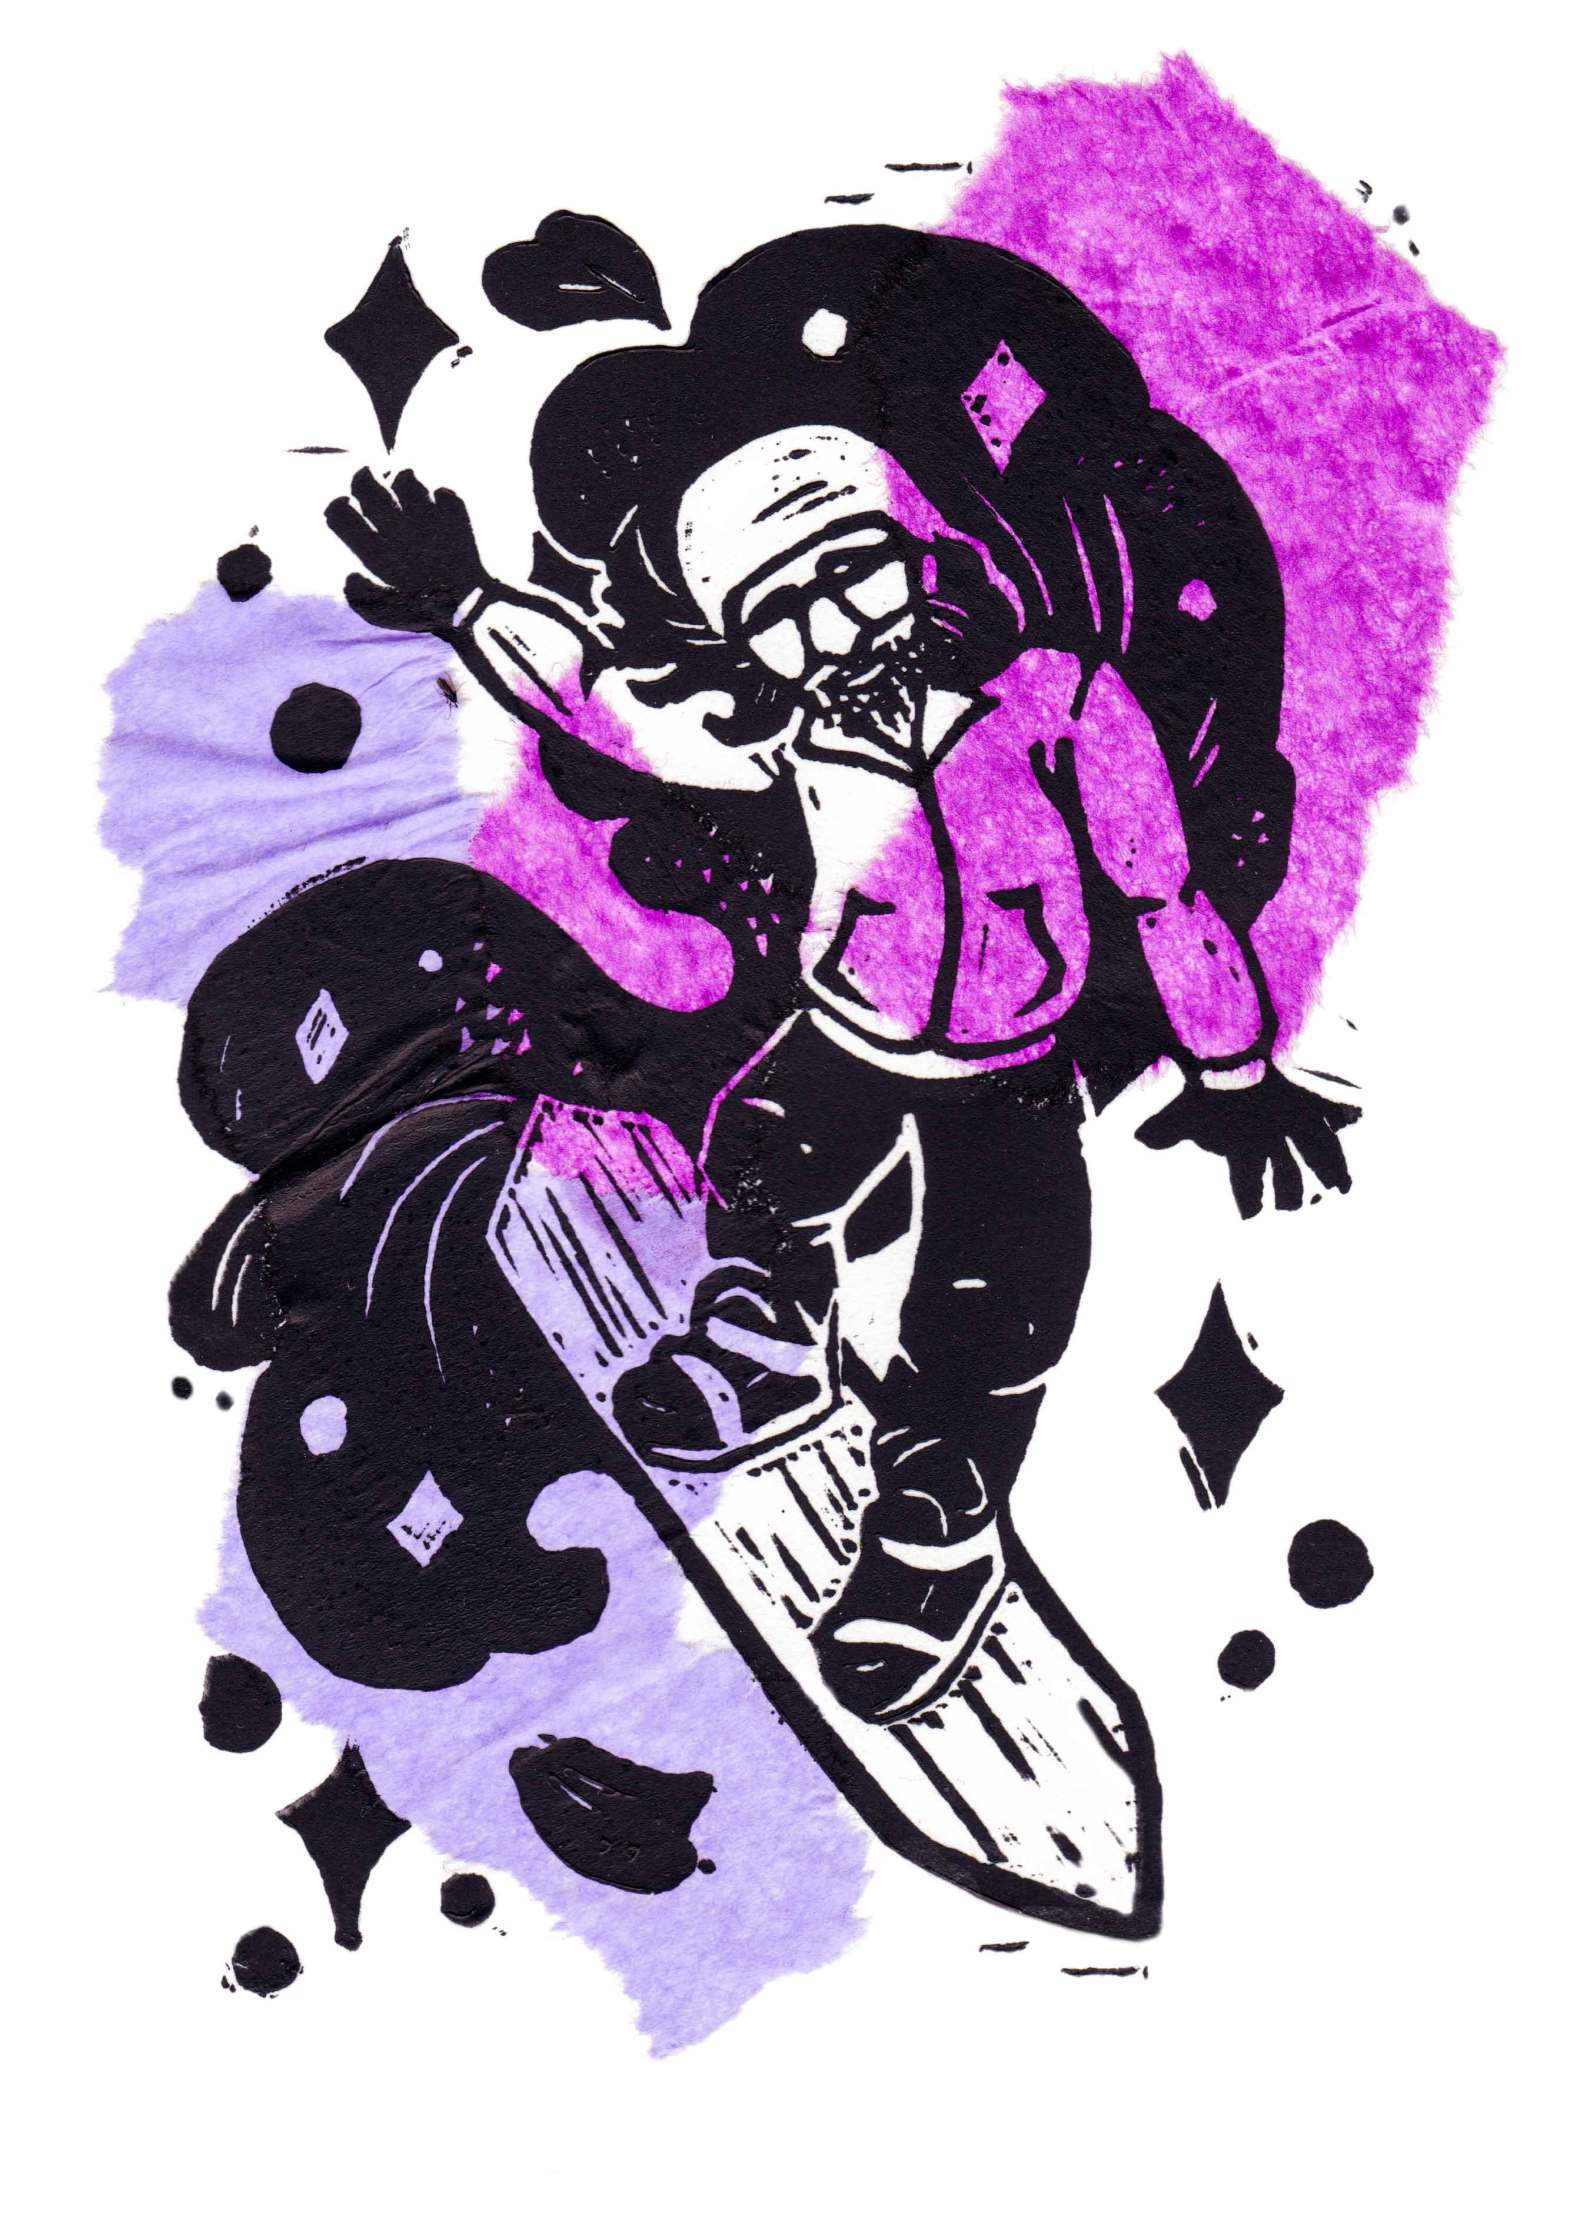 Drawing of snowboarder